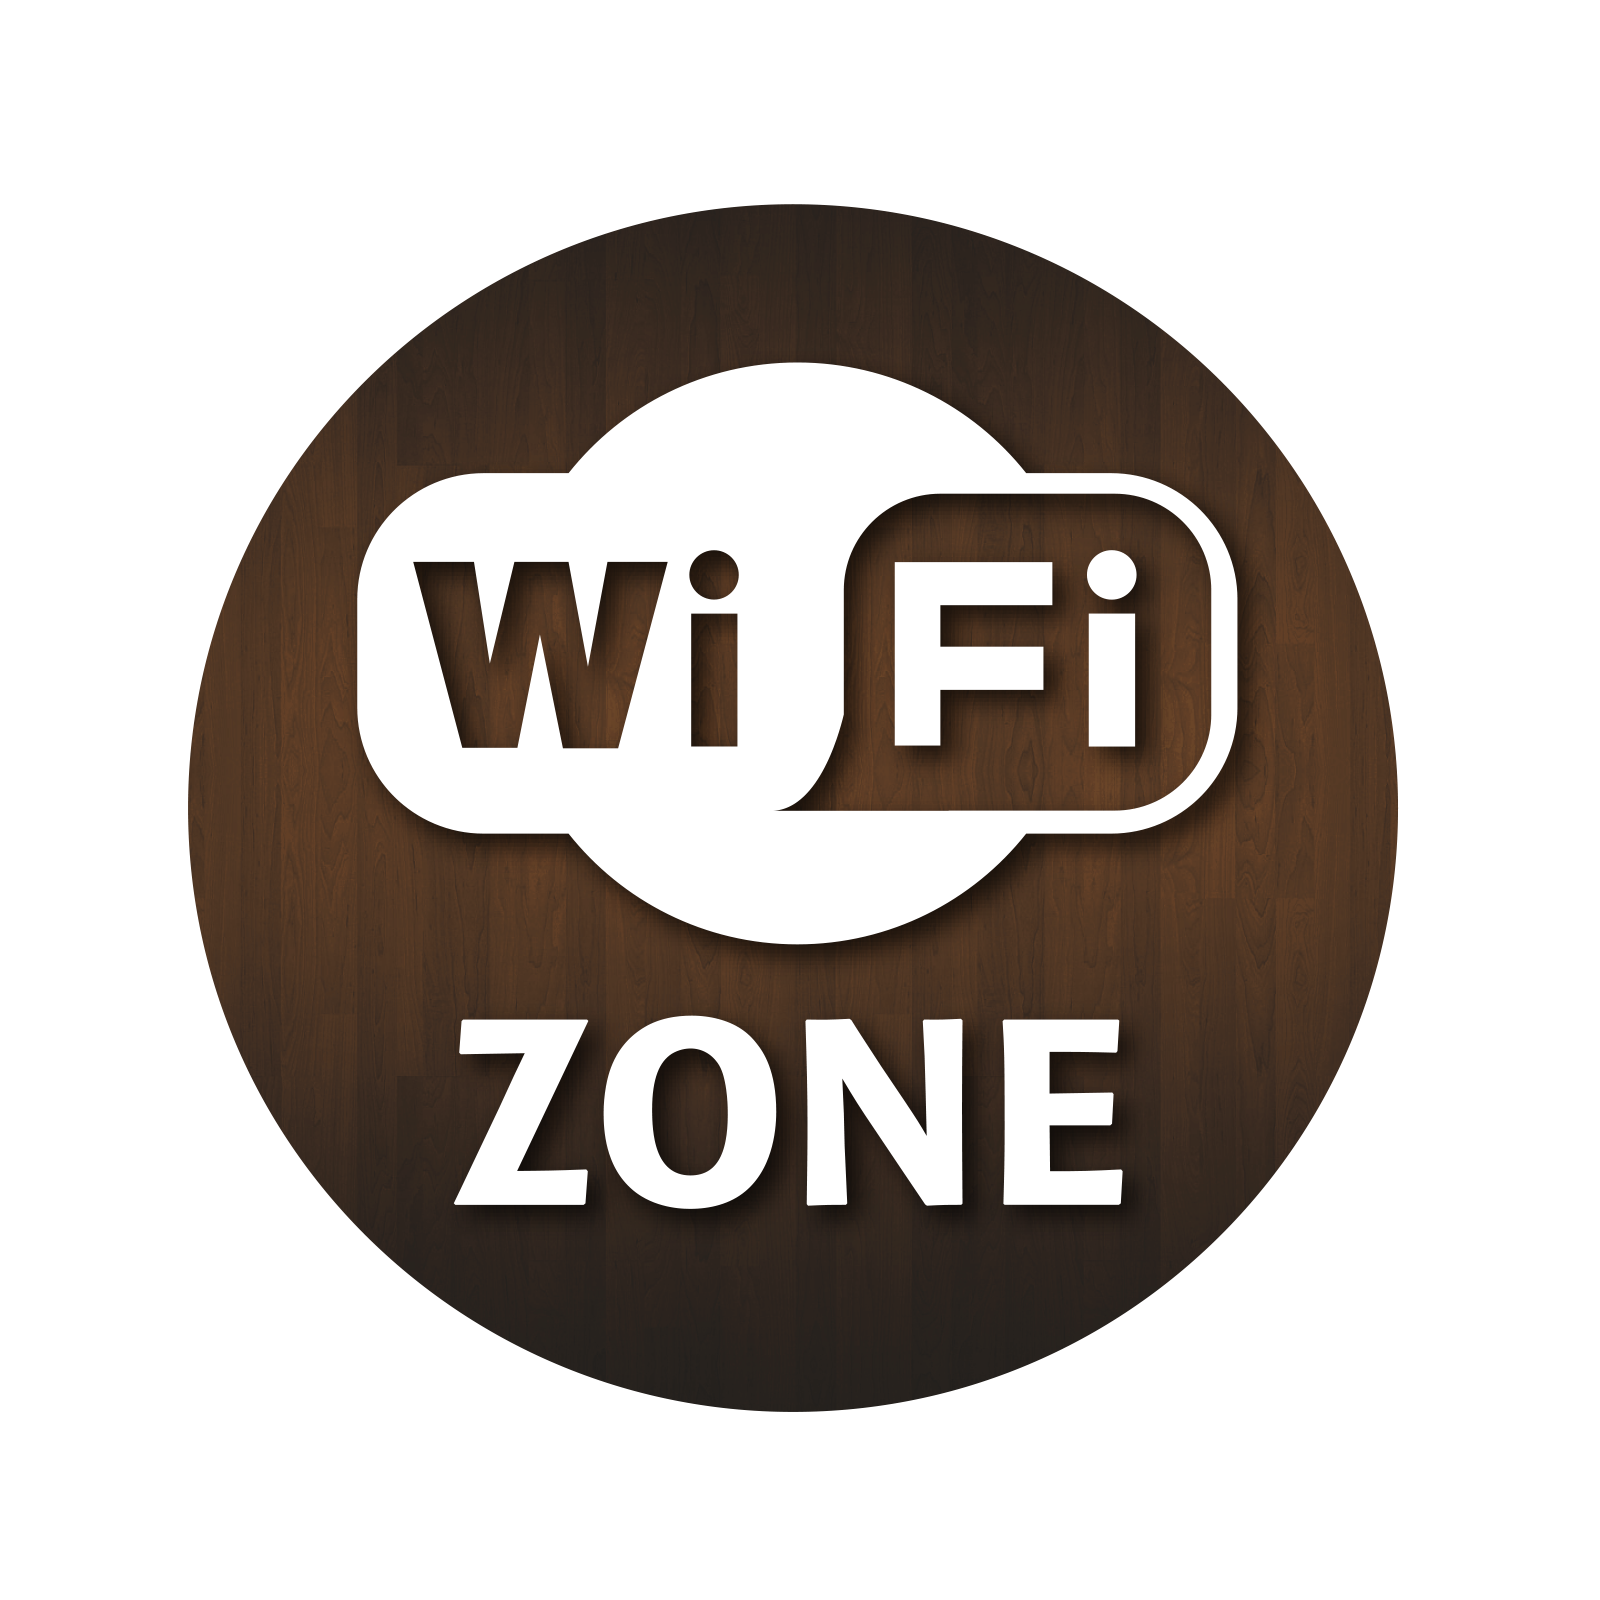 Wifi Zone Window Sticker.